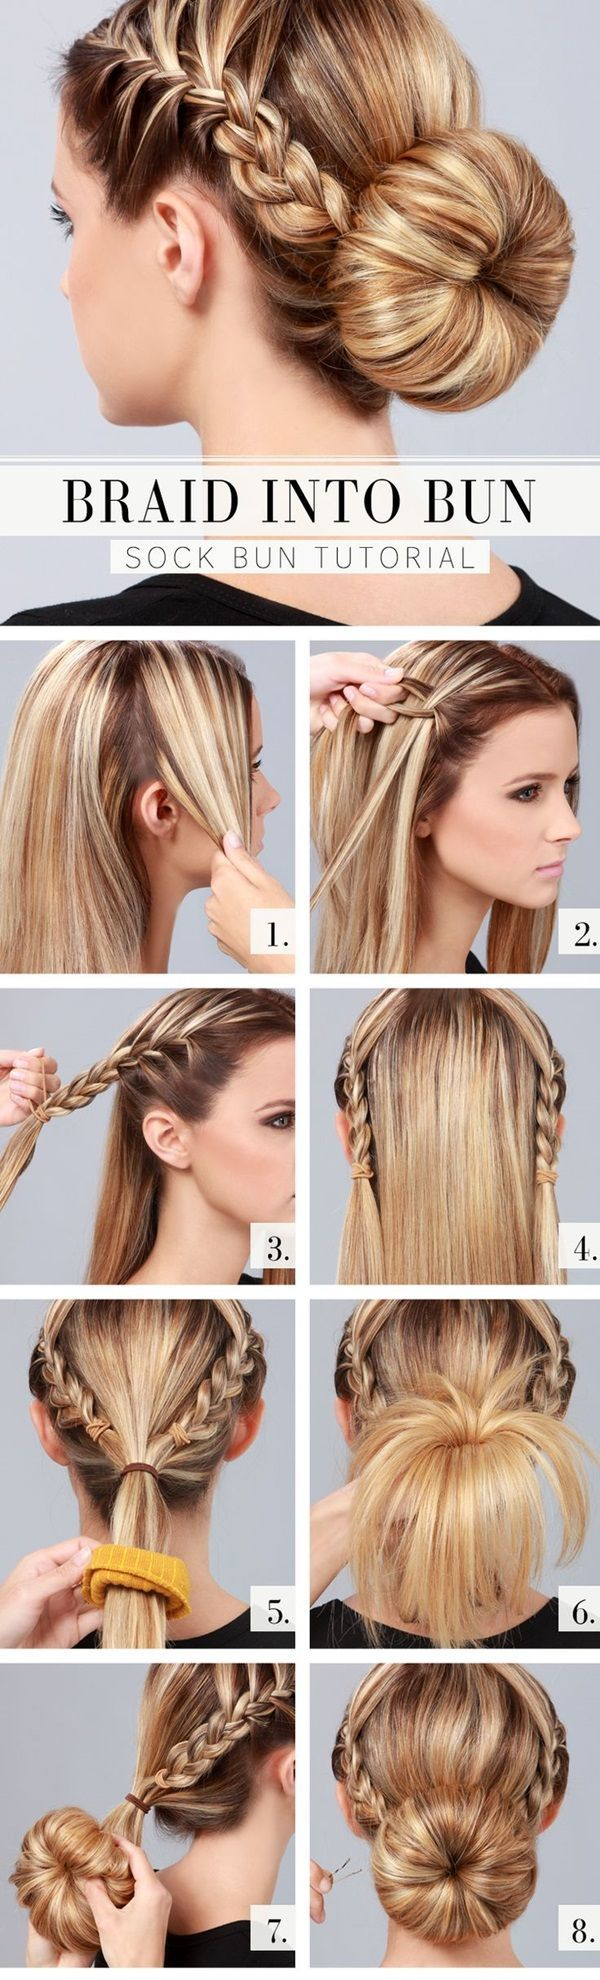 50 simple five minute hairstyles for office women: diy | hairstyle